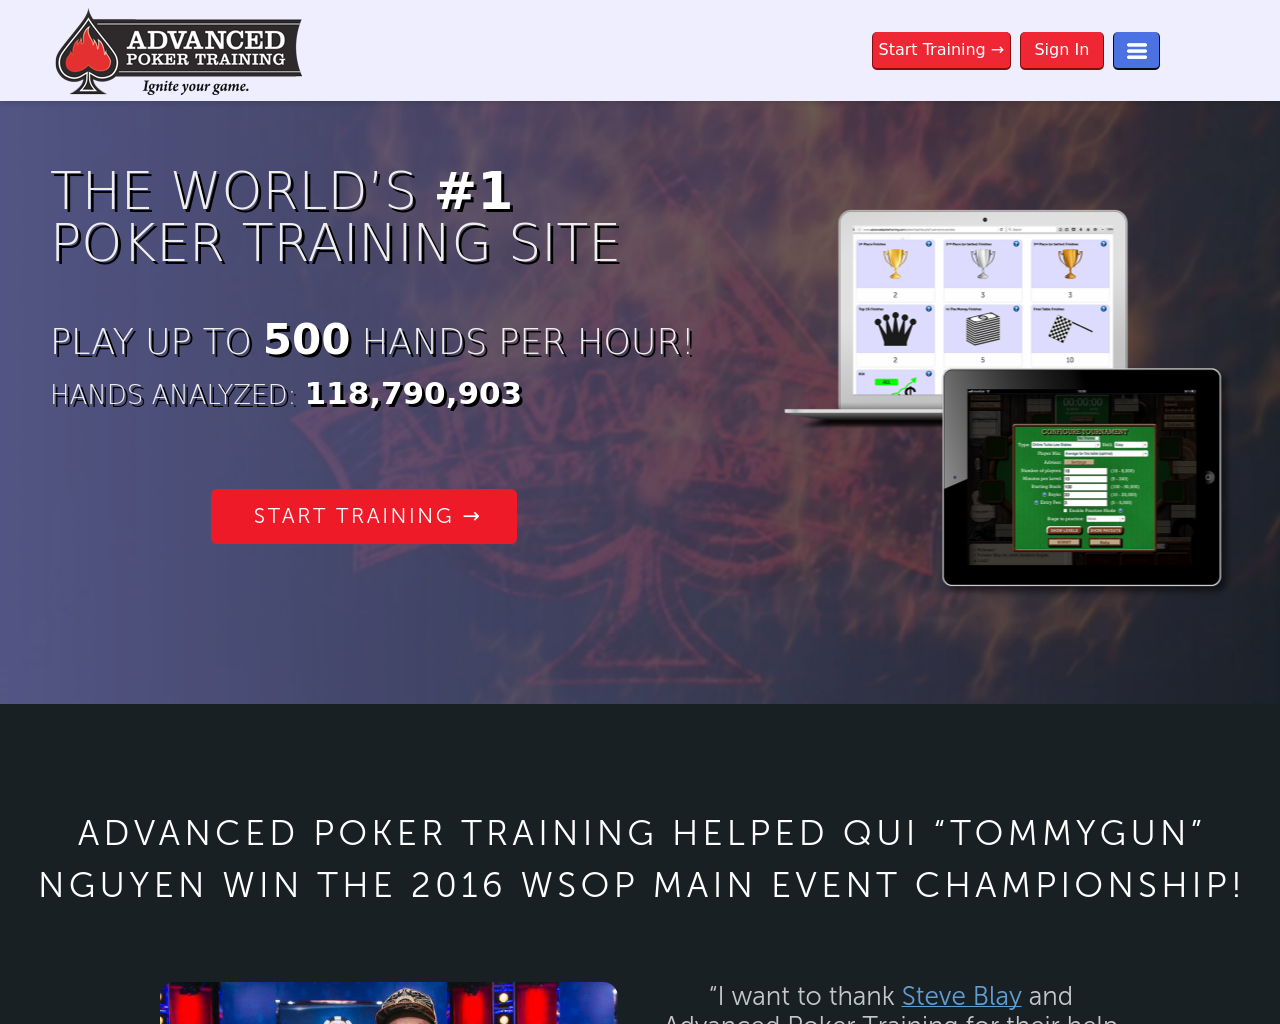 Advanced-Poker-Training-Advertising-Reviews-Pricing